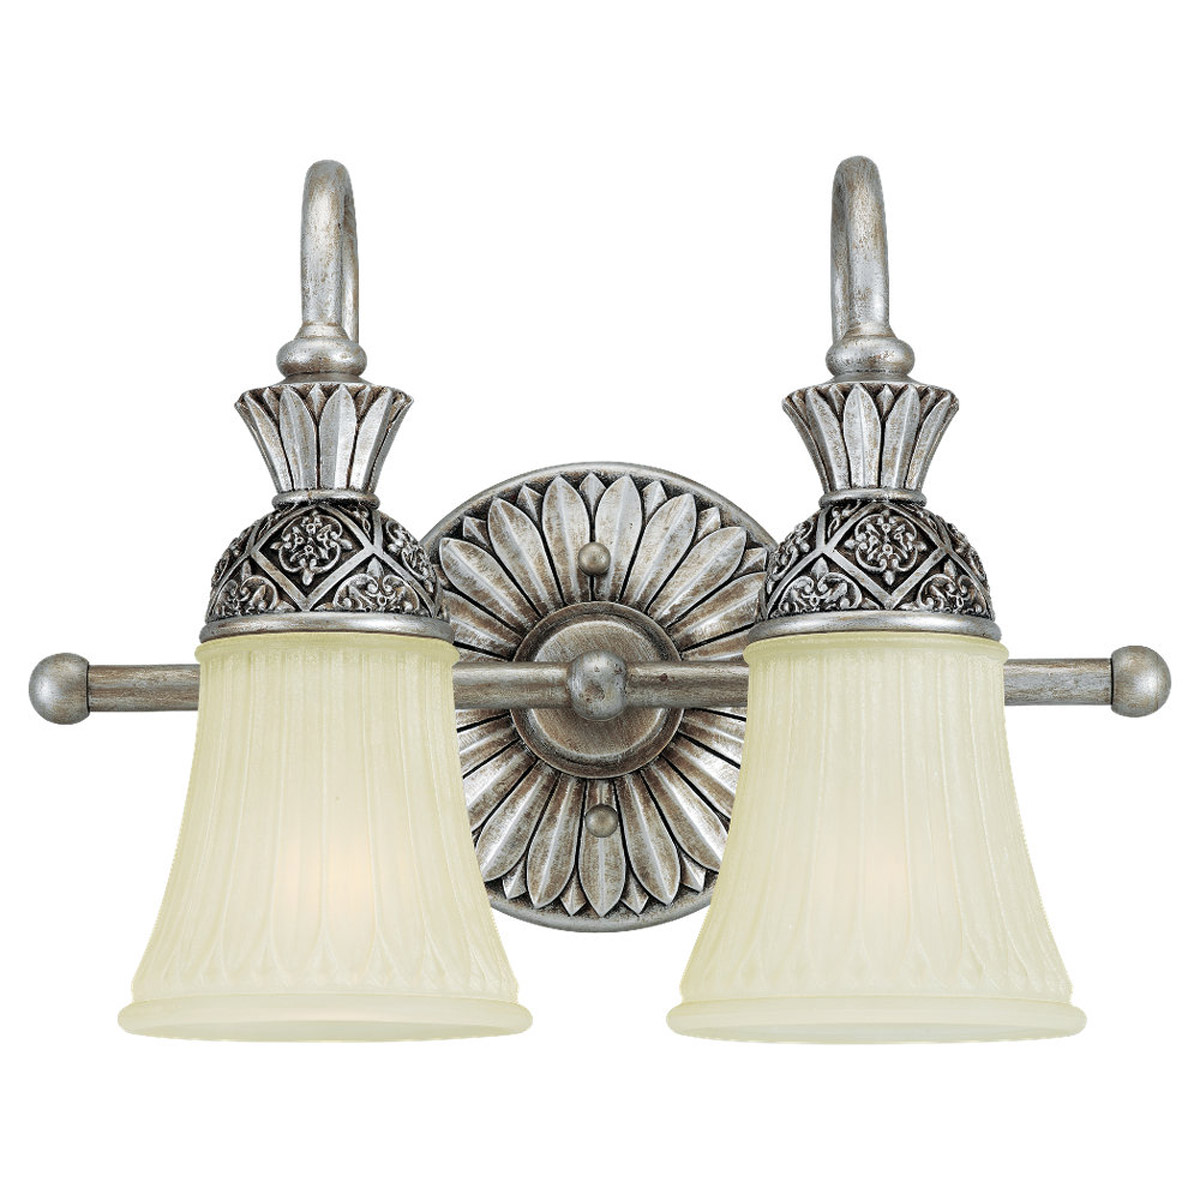 Sea Gull Lighting Highlands 2 Light Bath Vanity in Palladium 47251-824